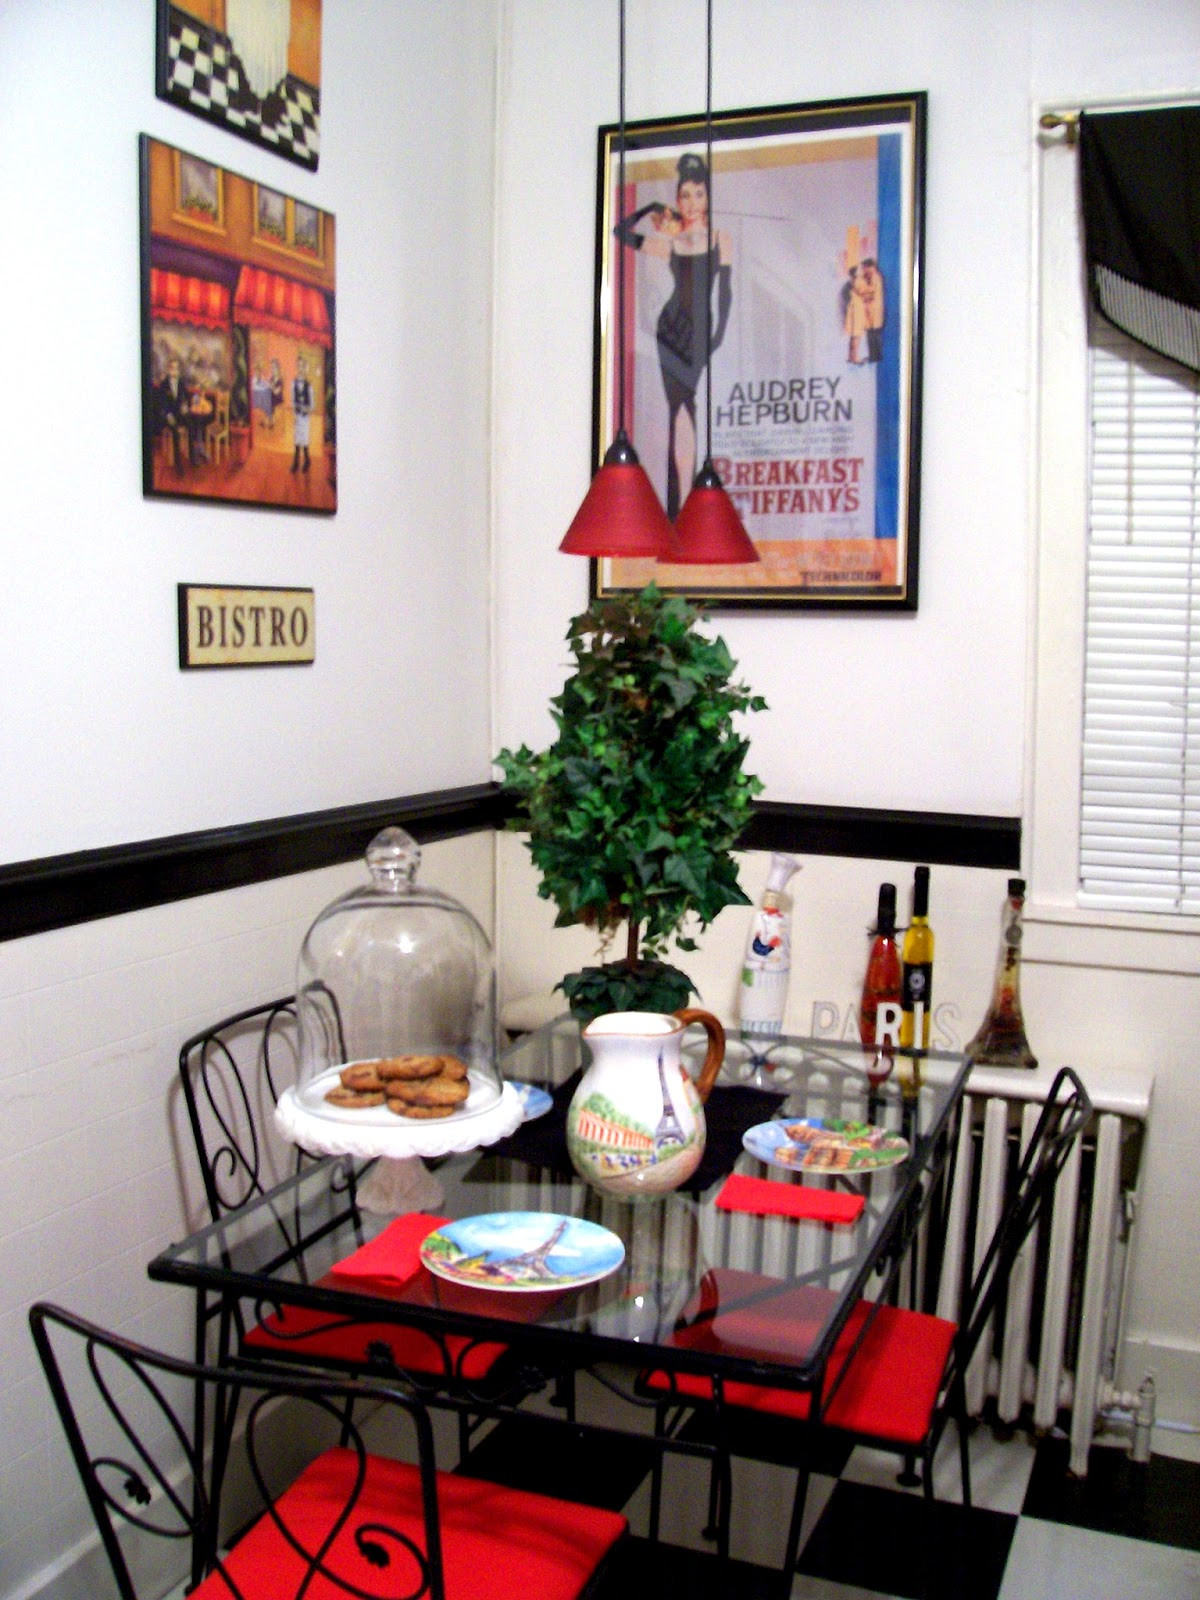 Best ideas about Cafe Kitchen Decor . Save or Pin Eye For Design Bistro Kitchen In A Circa 1900 Home Now.